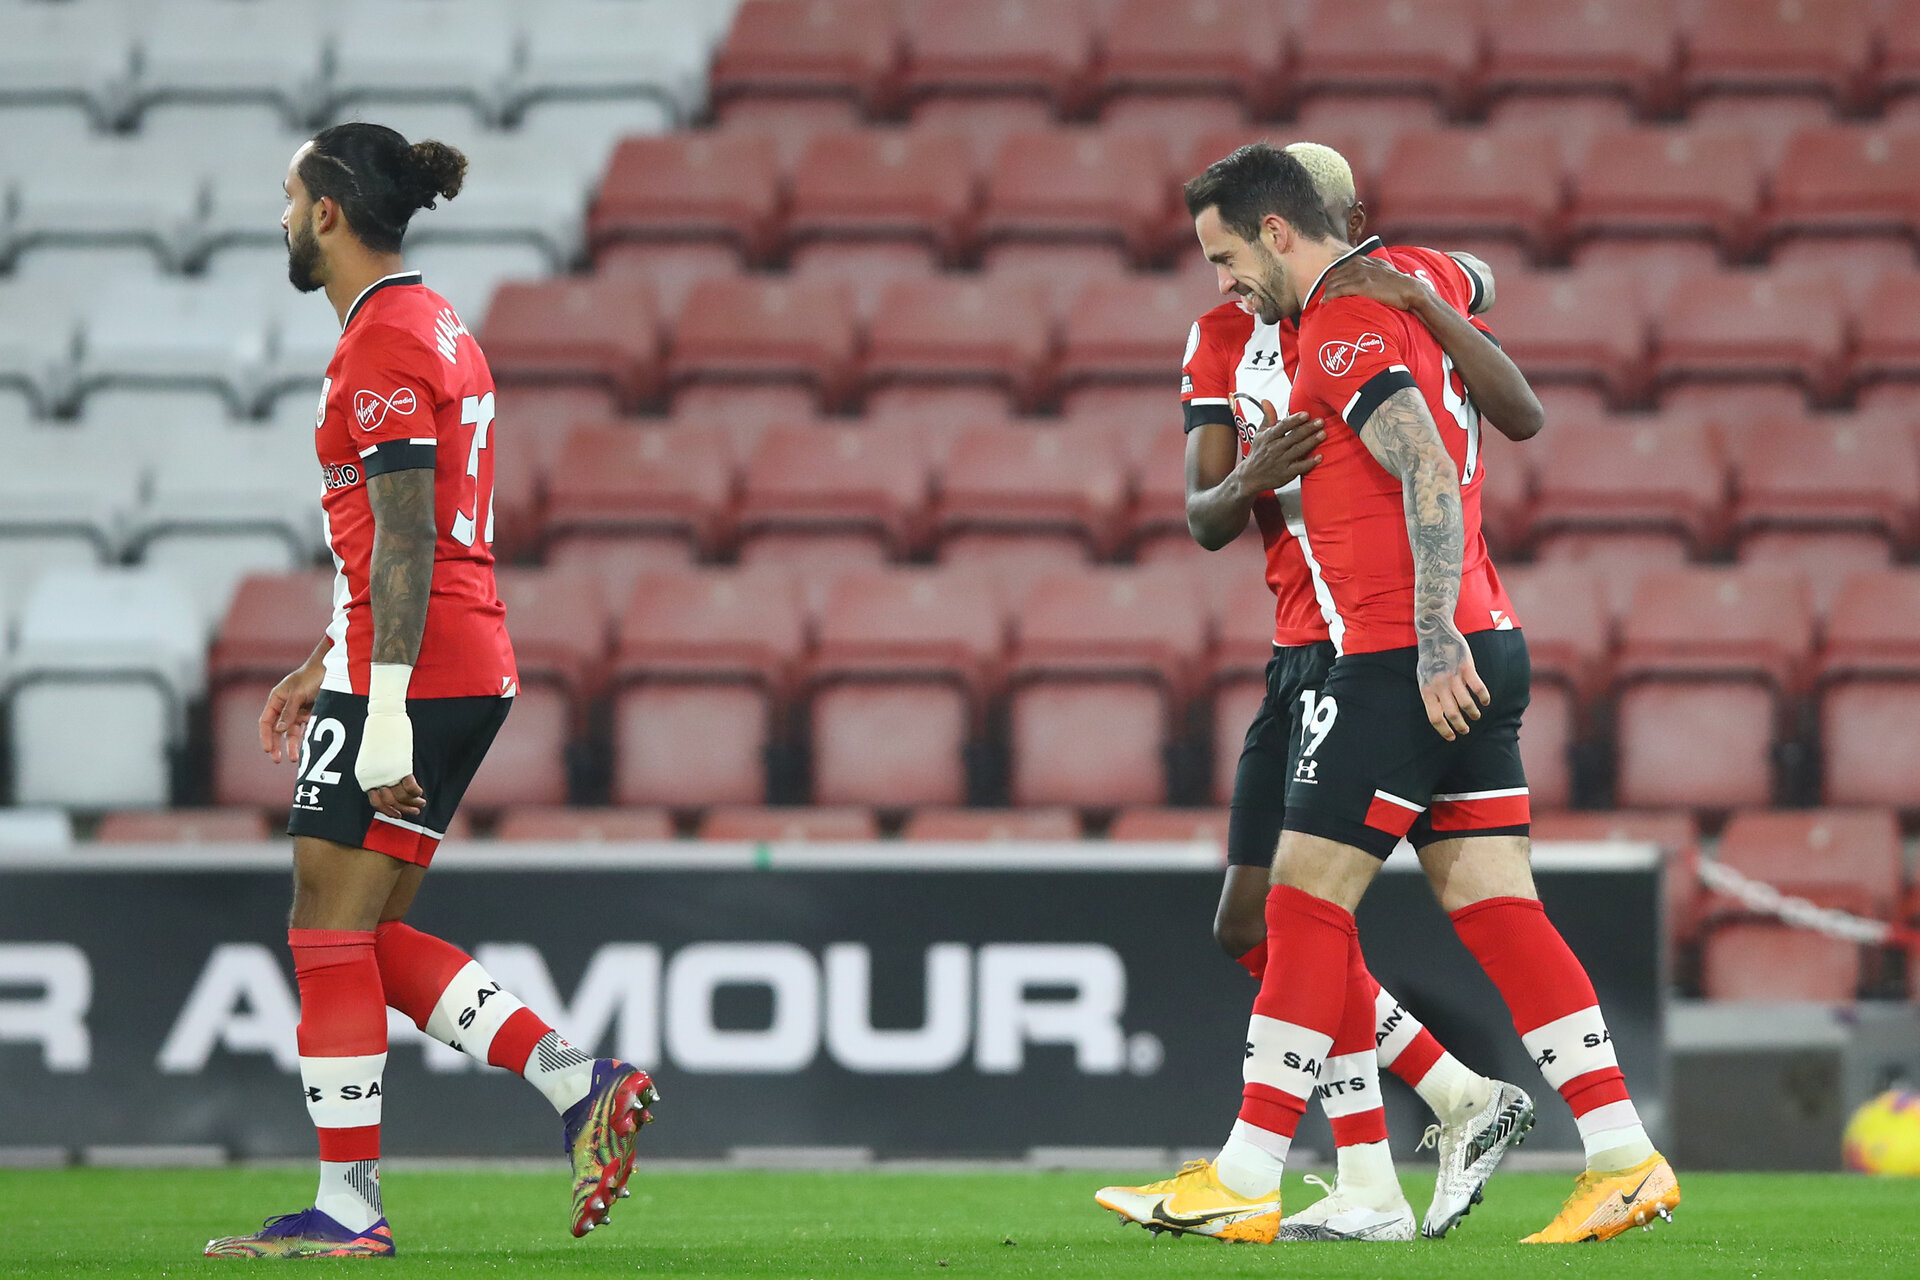 SOUTHAMPTON, ENGLAND - JANUARY 04: Danny Ings(R) of Southampton after opening the scoring during the Premier League match between Southampton and Liverpool at St Mary's Stadium on January 04, 2021 in Southampton, England. (Photo by Matt Watson/Southampton FC via Getty Images)